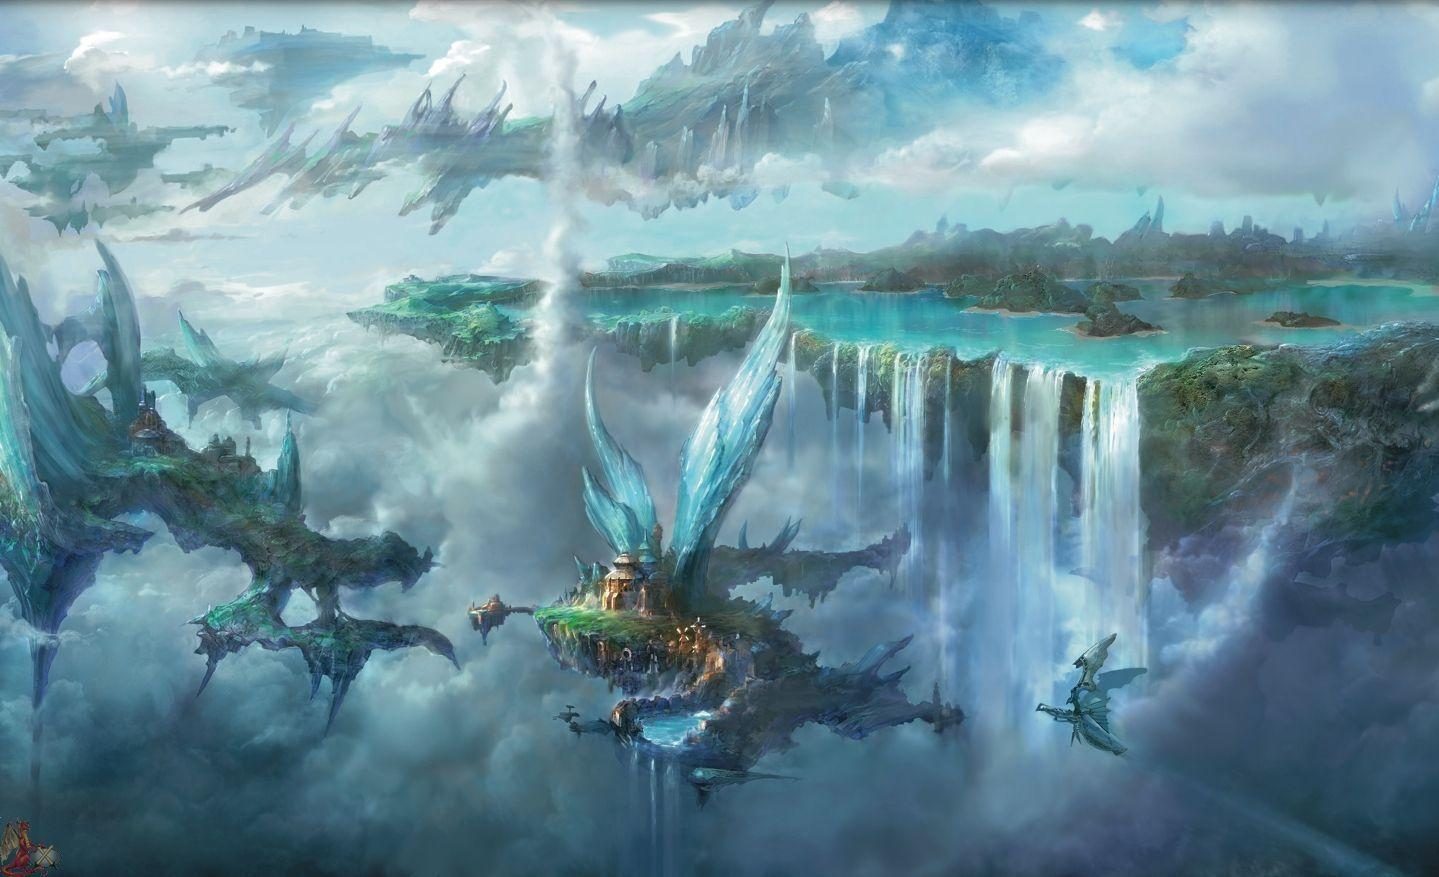 Stunning Hd Fantasy Wallpapers: HD Final Fantasy Wallpapers